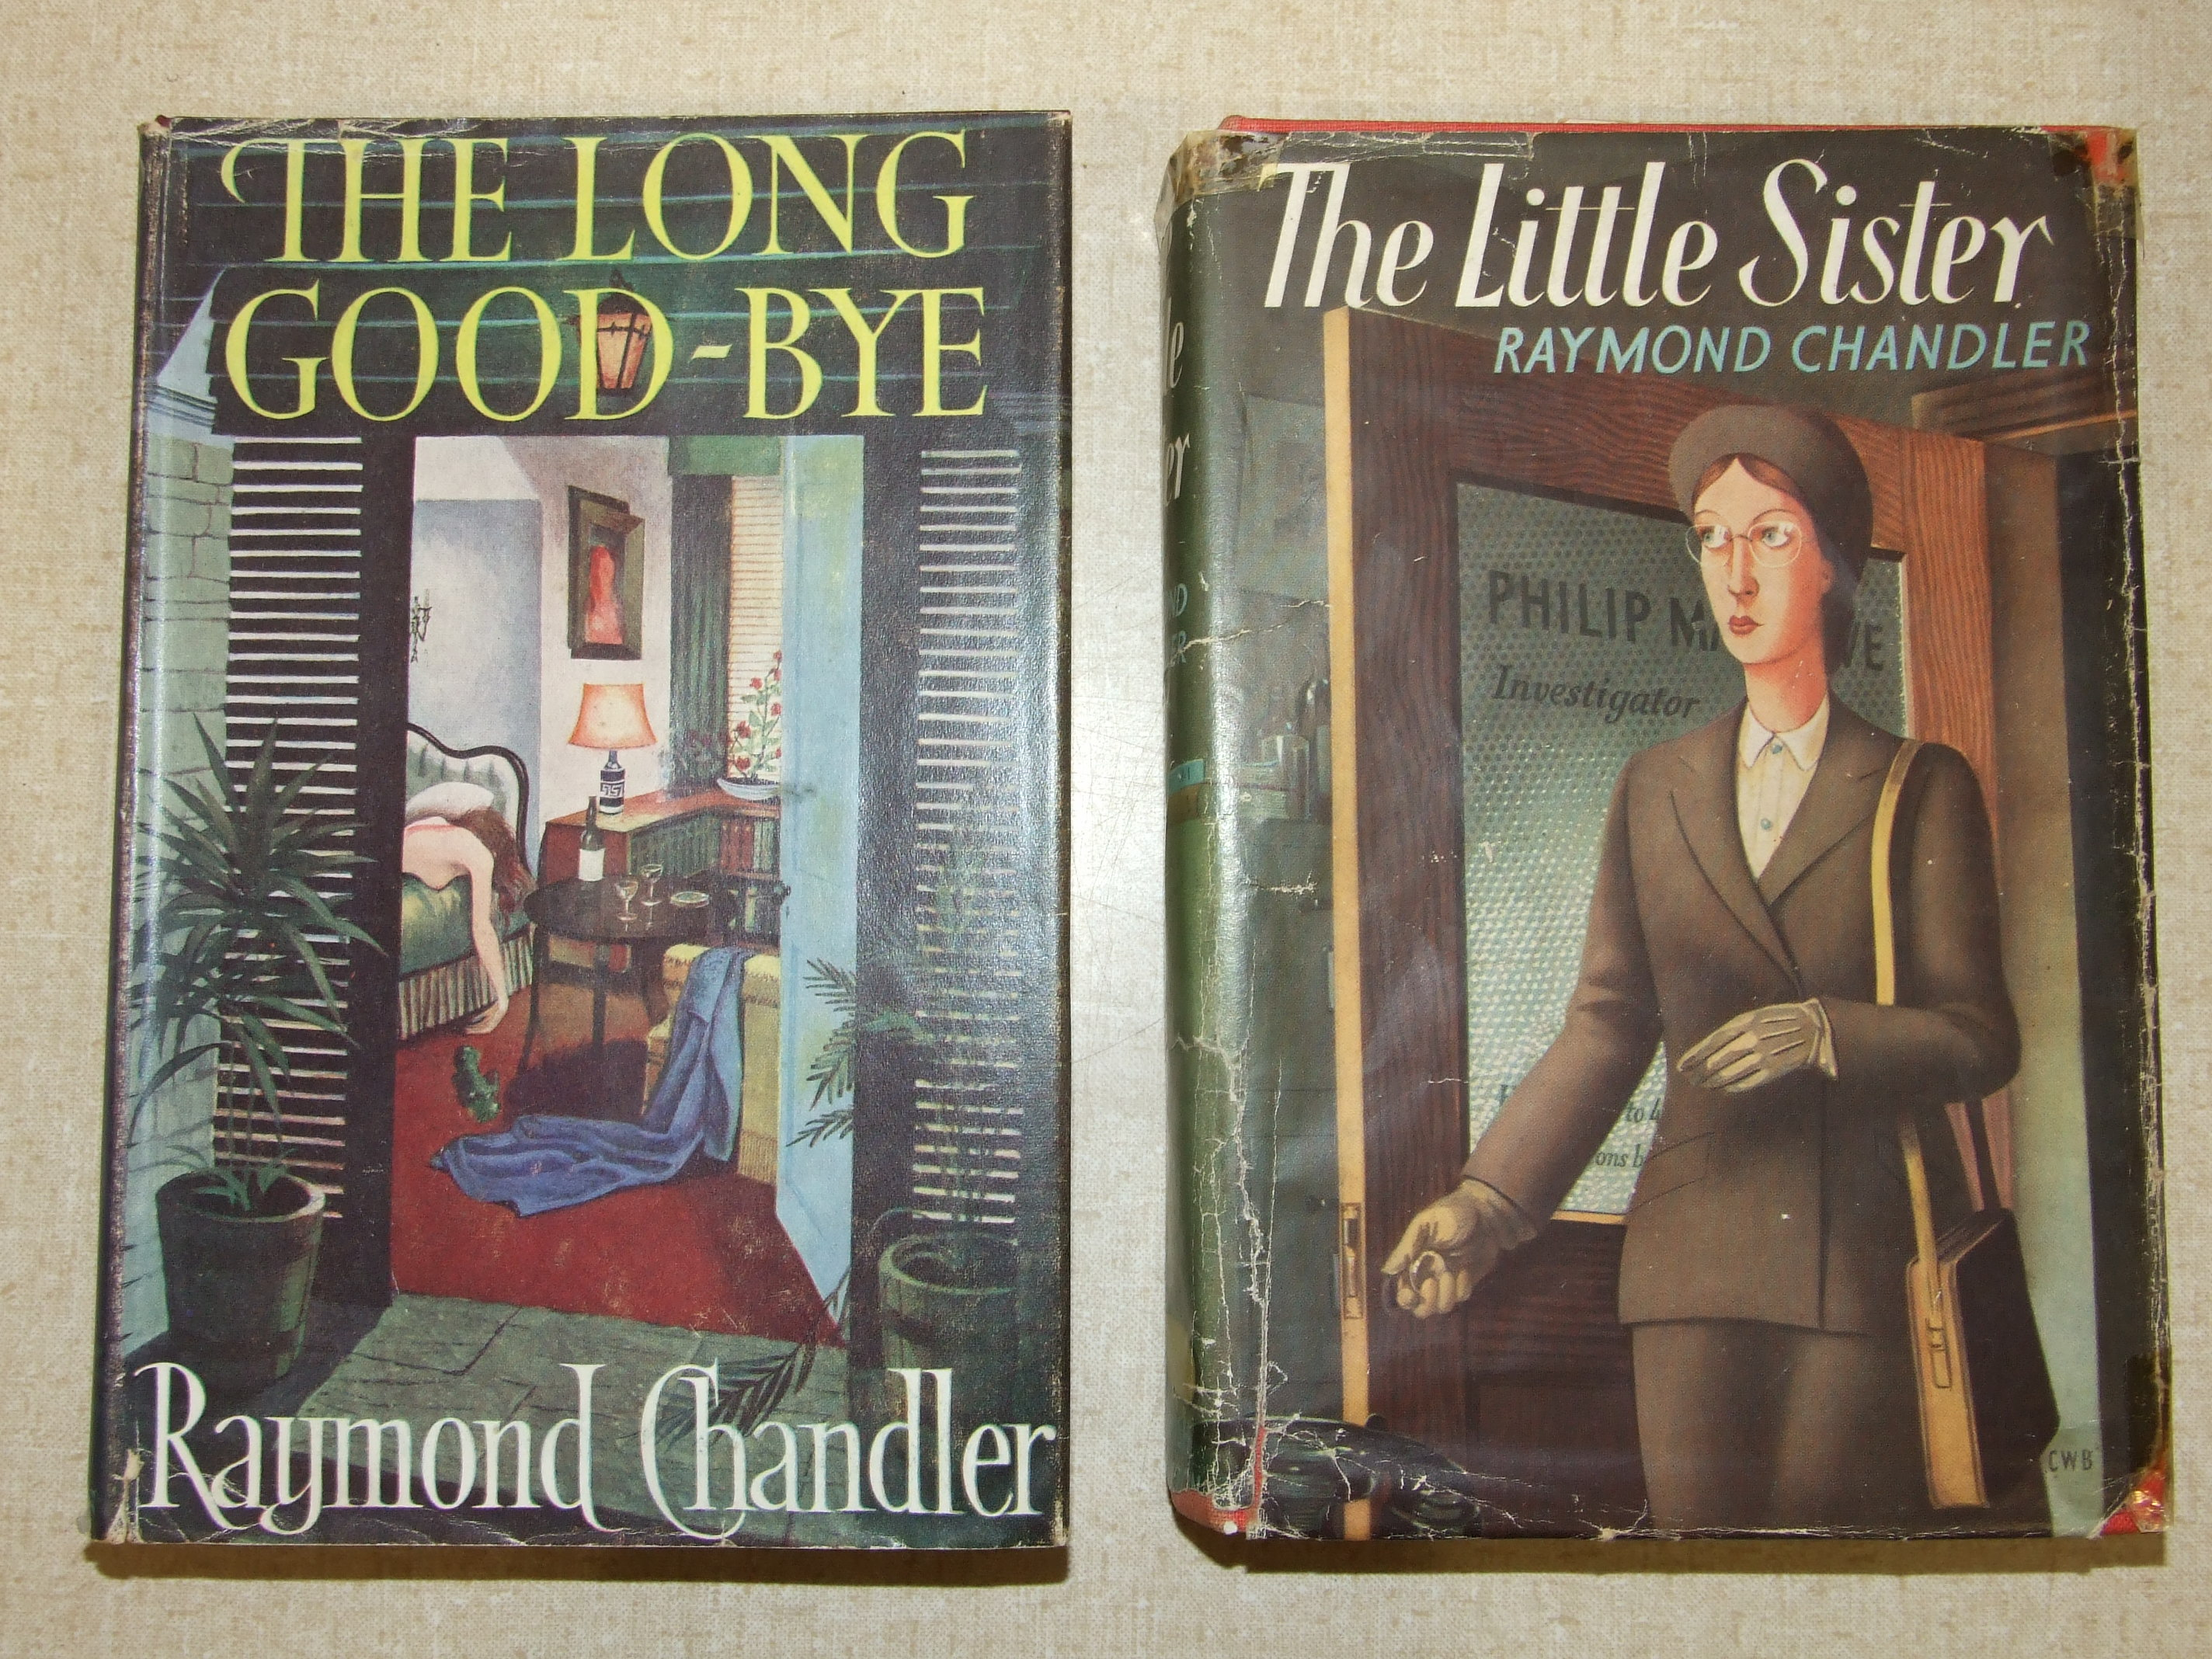 Lot 1 - Chandler (Raymond), The Little Sister, 1st Edn, dwrp (Sellotaped, not price-clipped), 8vo, 1949; The